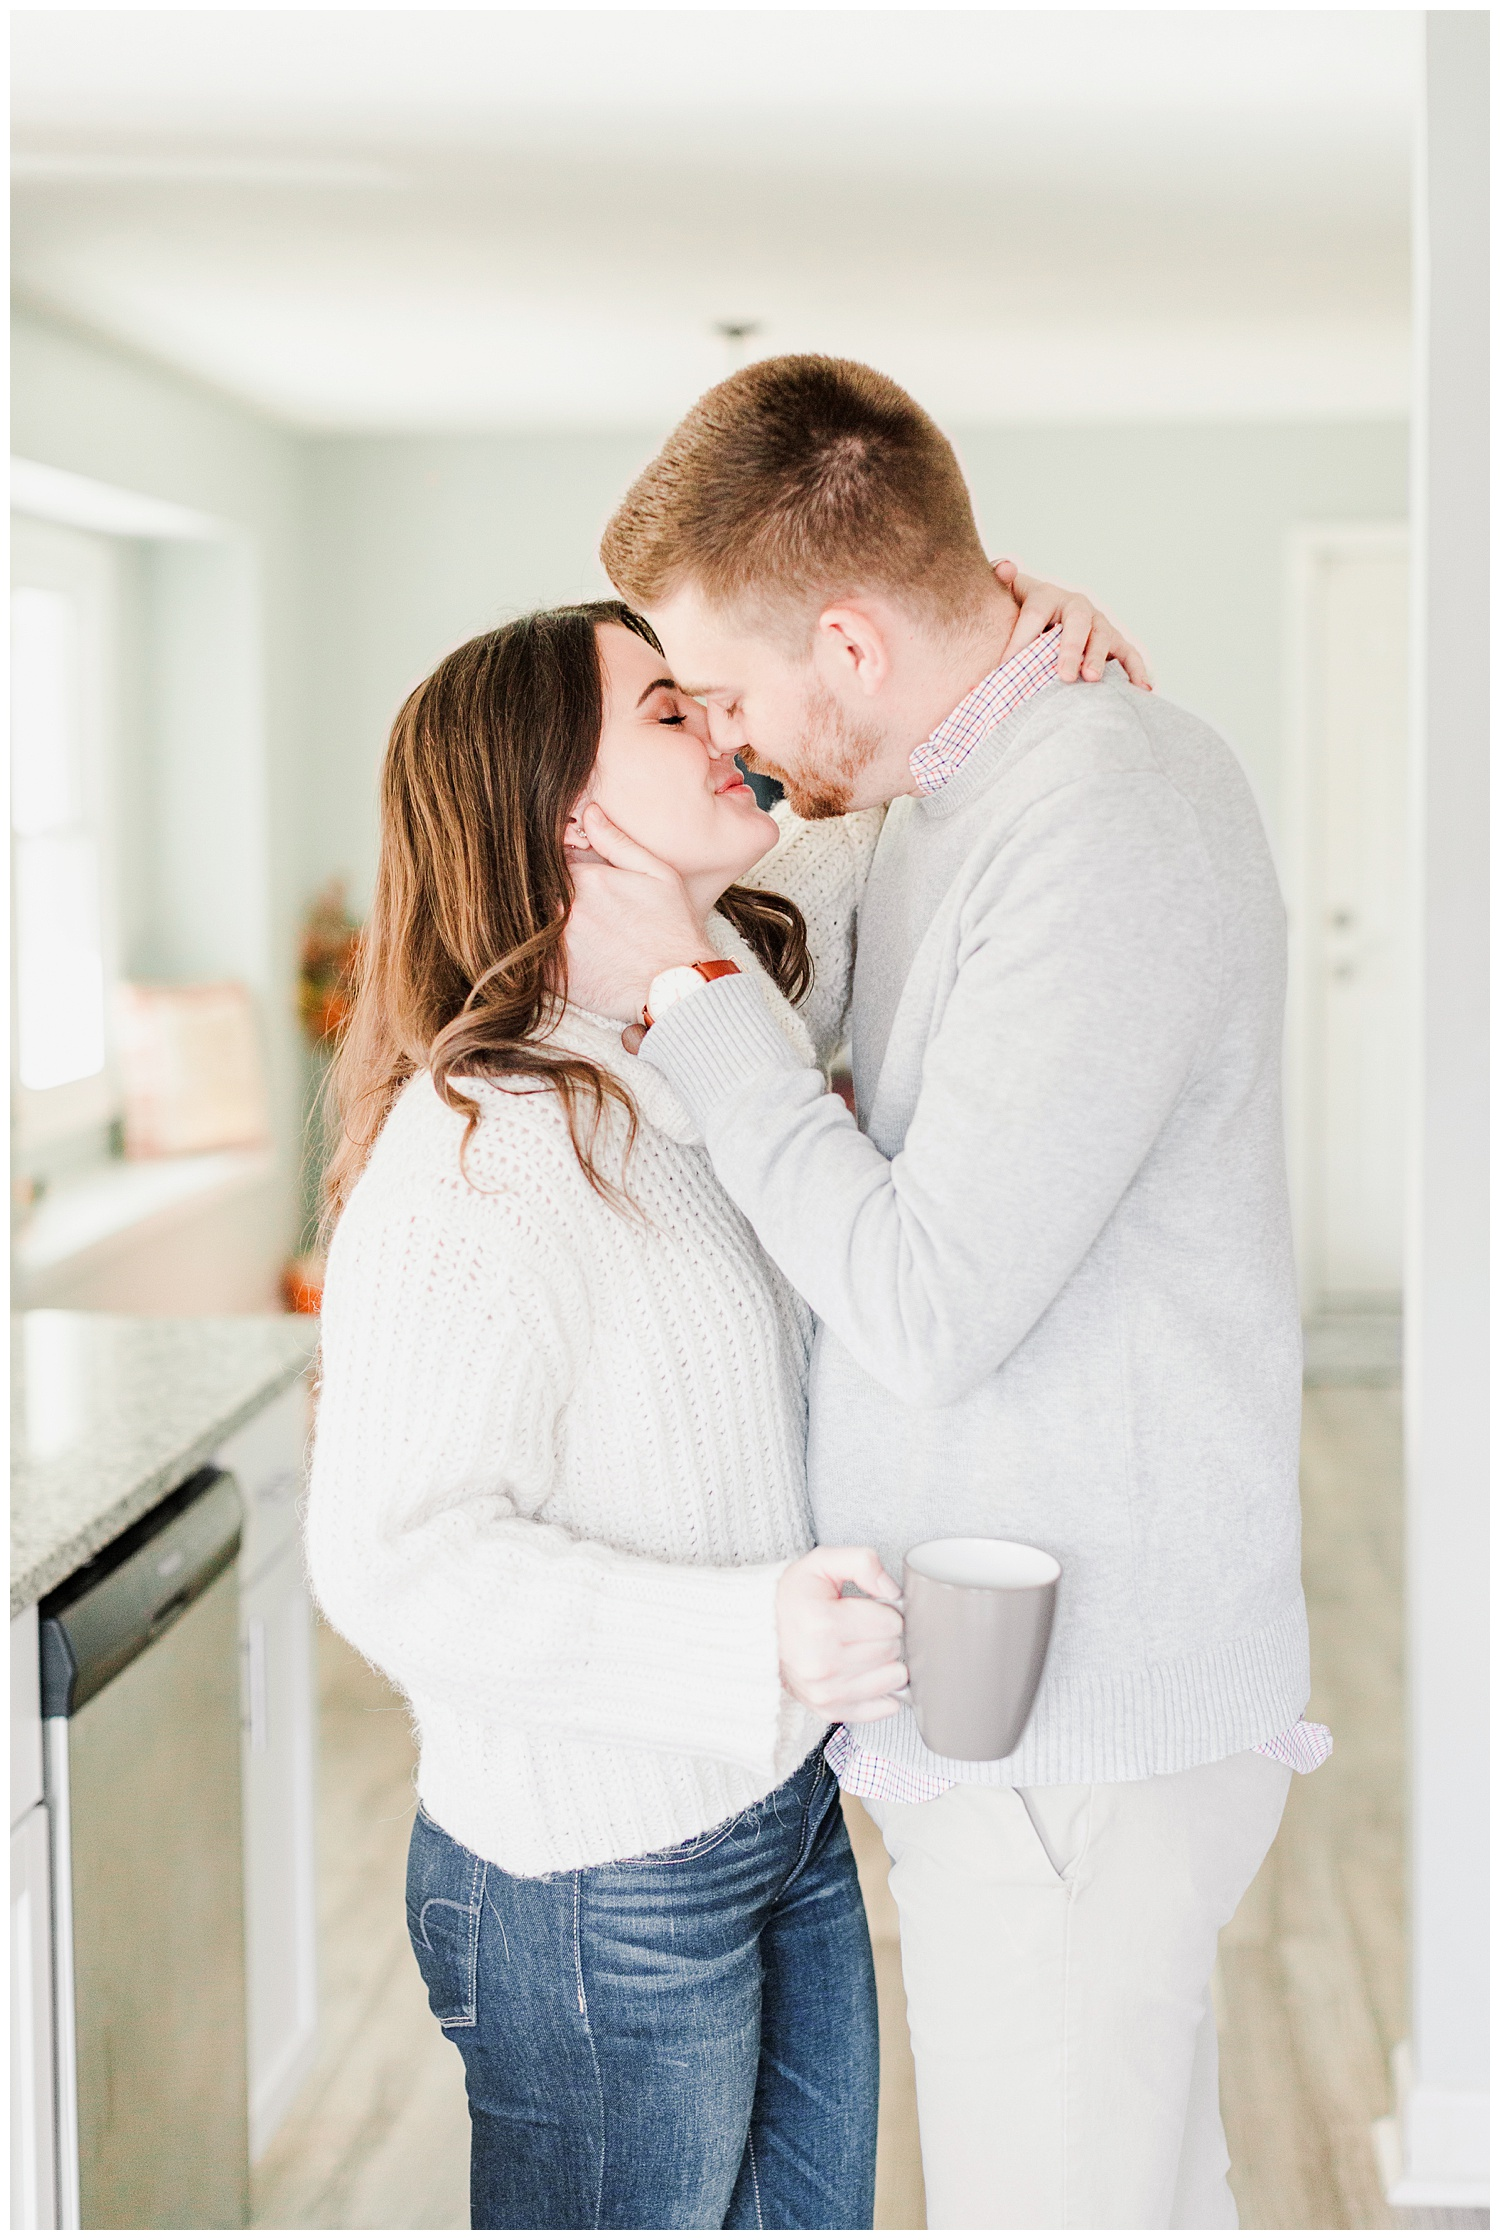 Dustin kisses Jenna while holding a cup of coffee | Cozy Kitchen Engagement Session | CB Studio